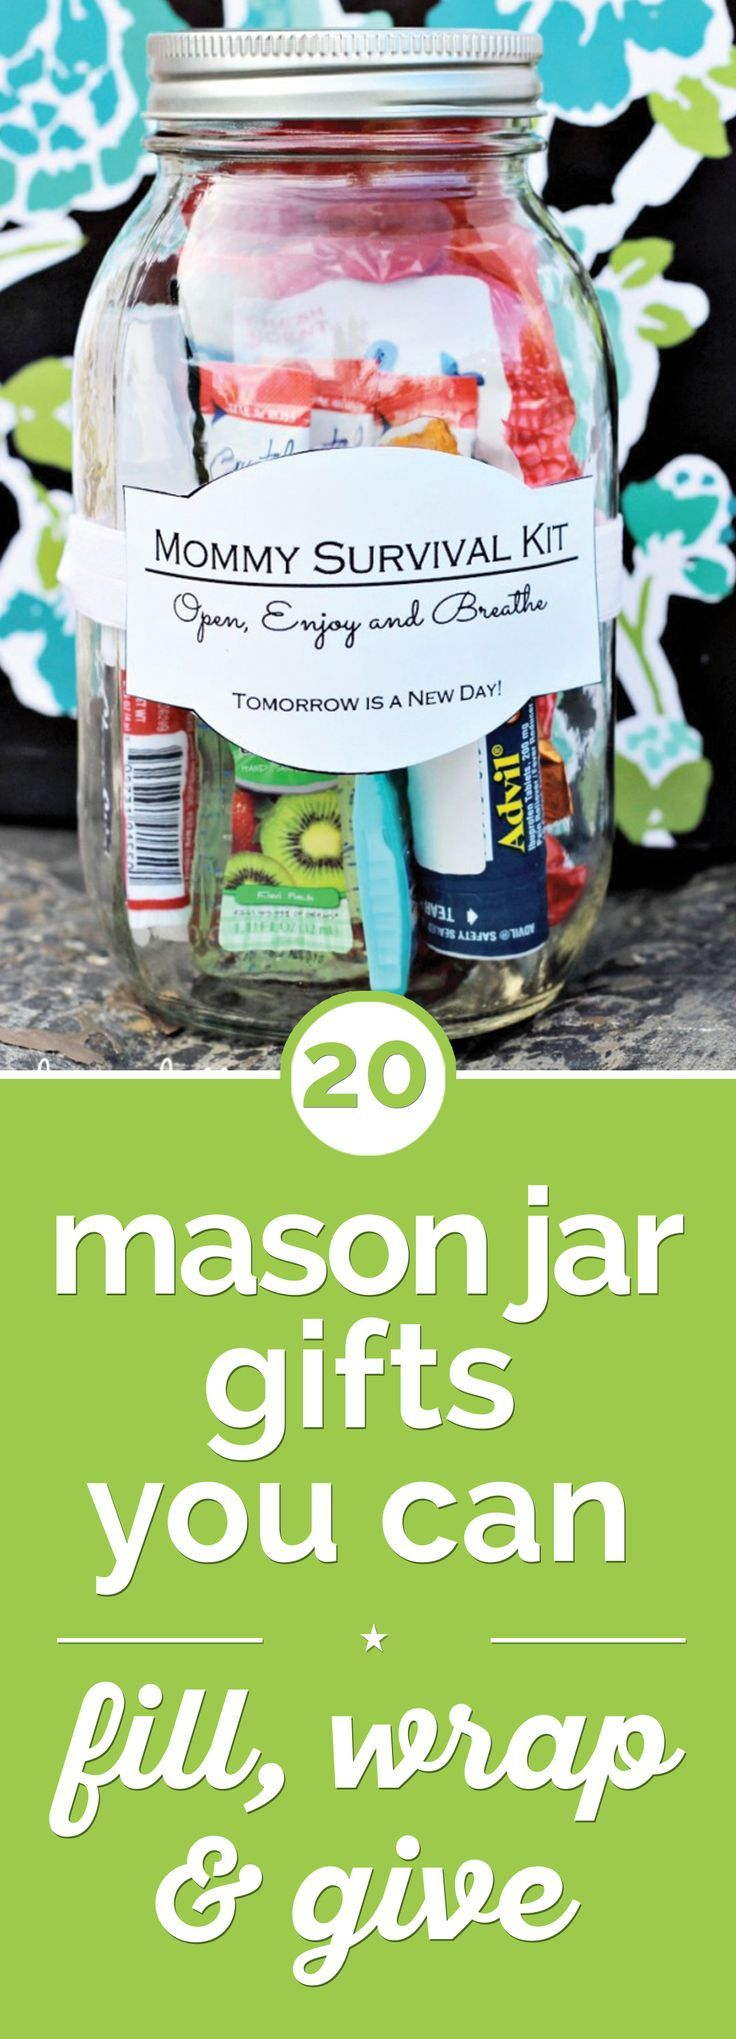 20 mason jar gifts you can fill wrap give gift for What to fill mason jars with for christmas